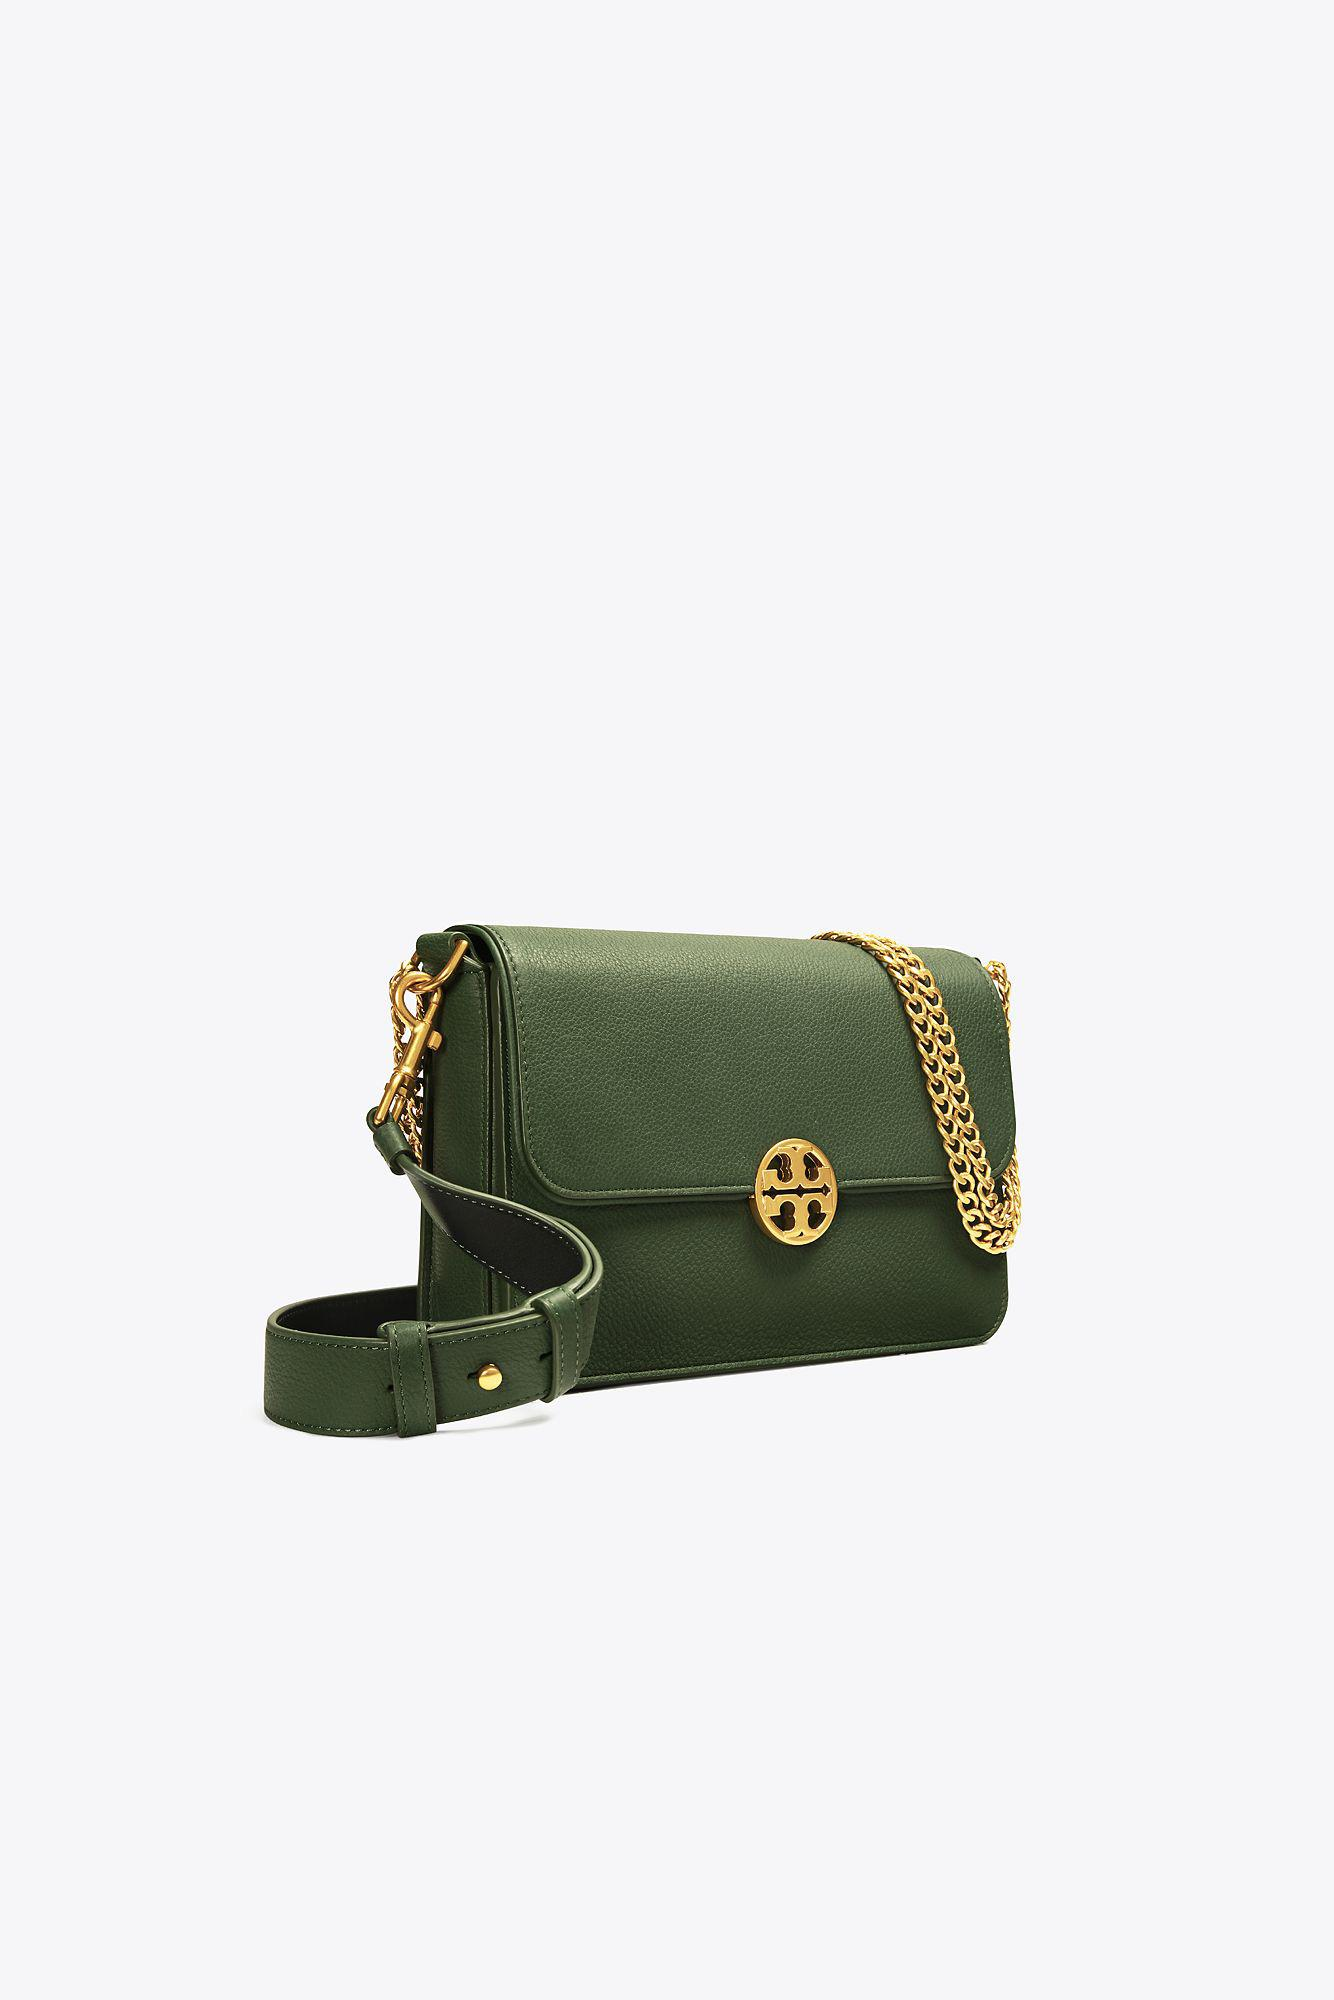 e37d240a442 Lyst - Tory Burch Chelsea Shoulder Bag in Green